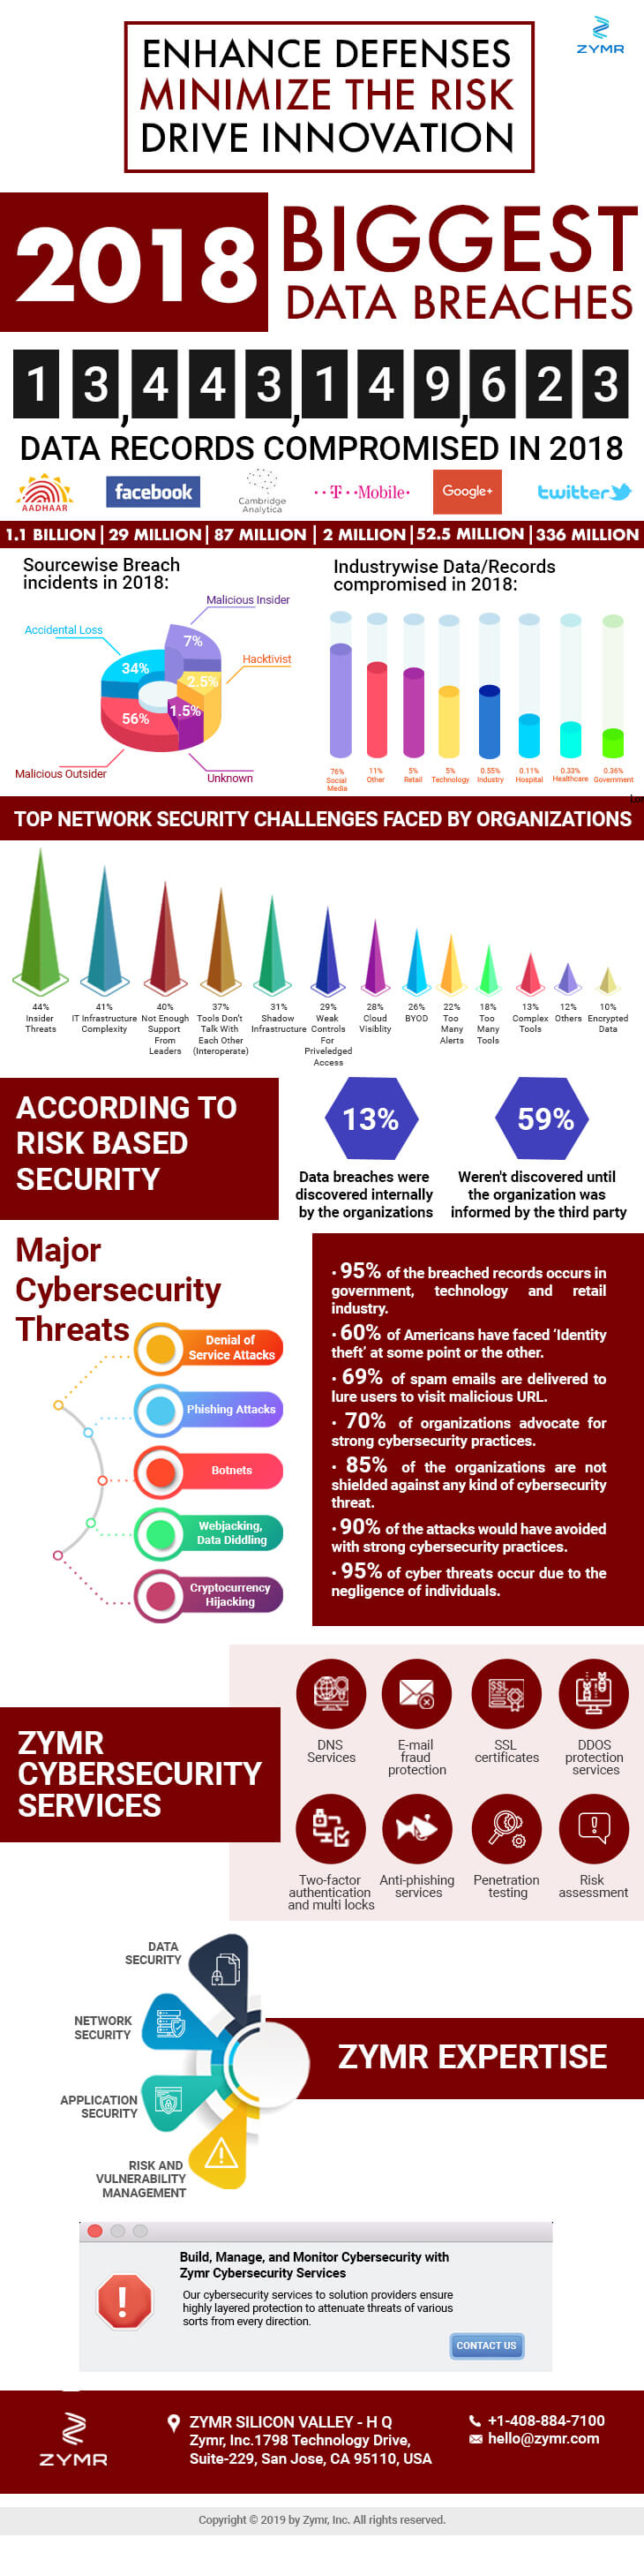 Zymr-Cybersecurity-Services-Infographic